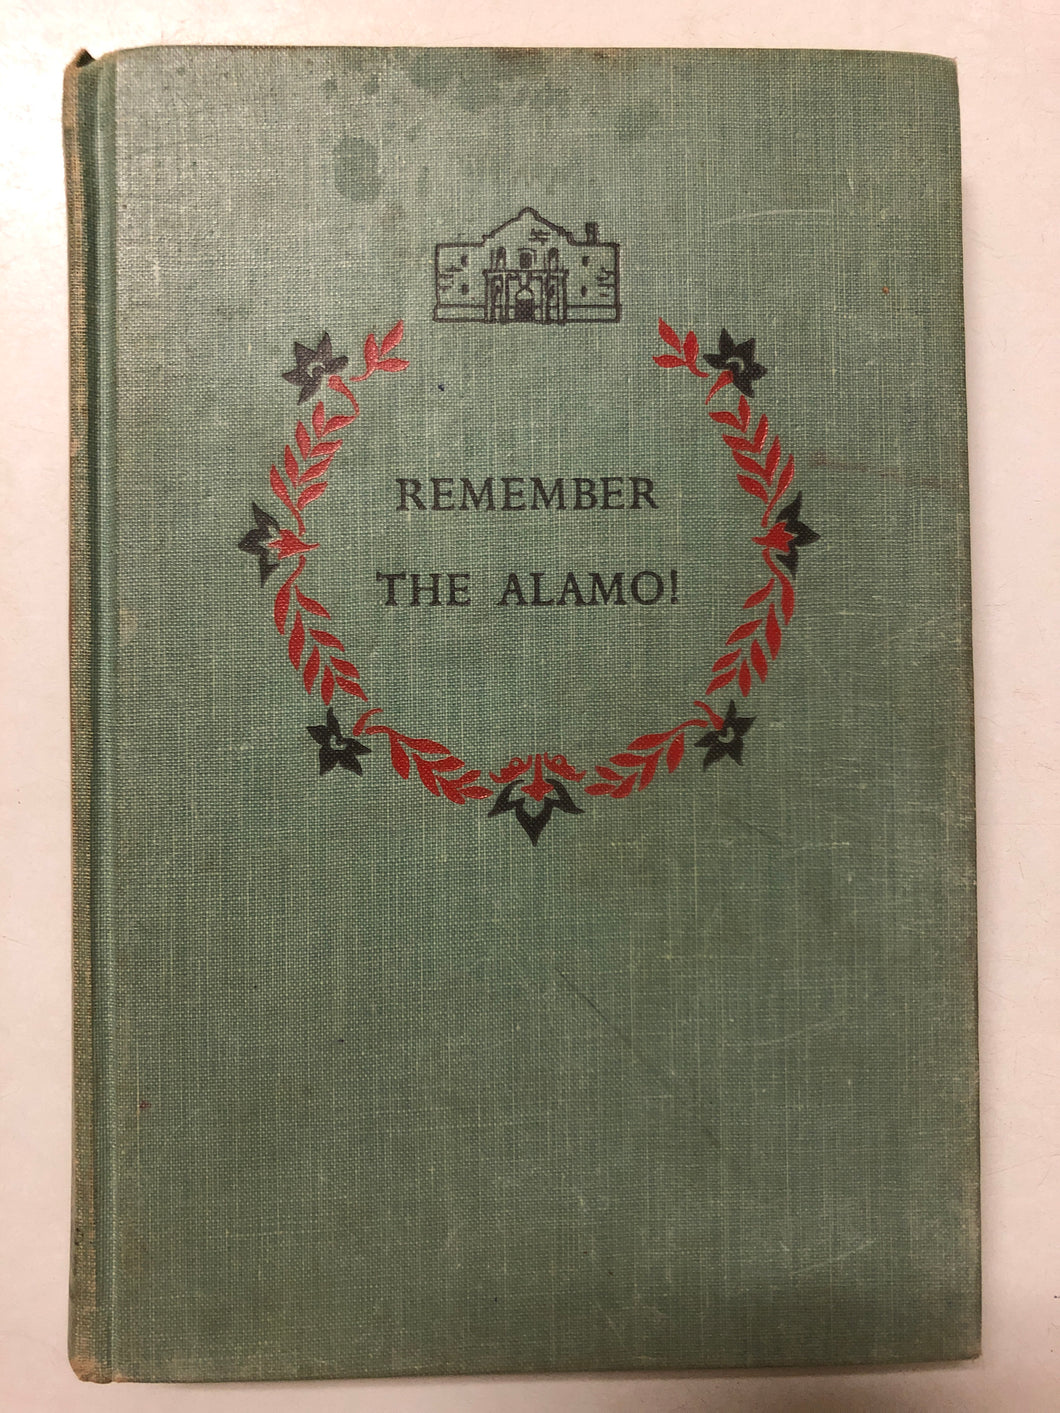 Remember the Alamo - Slick Cat Books